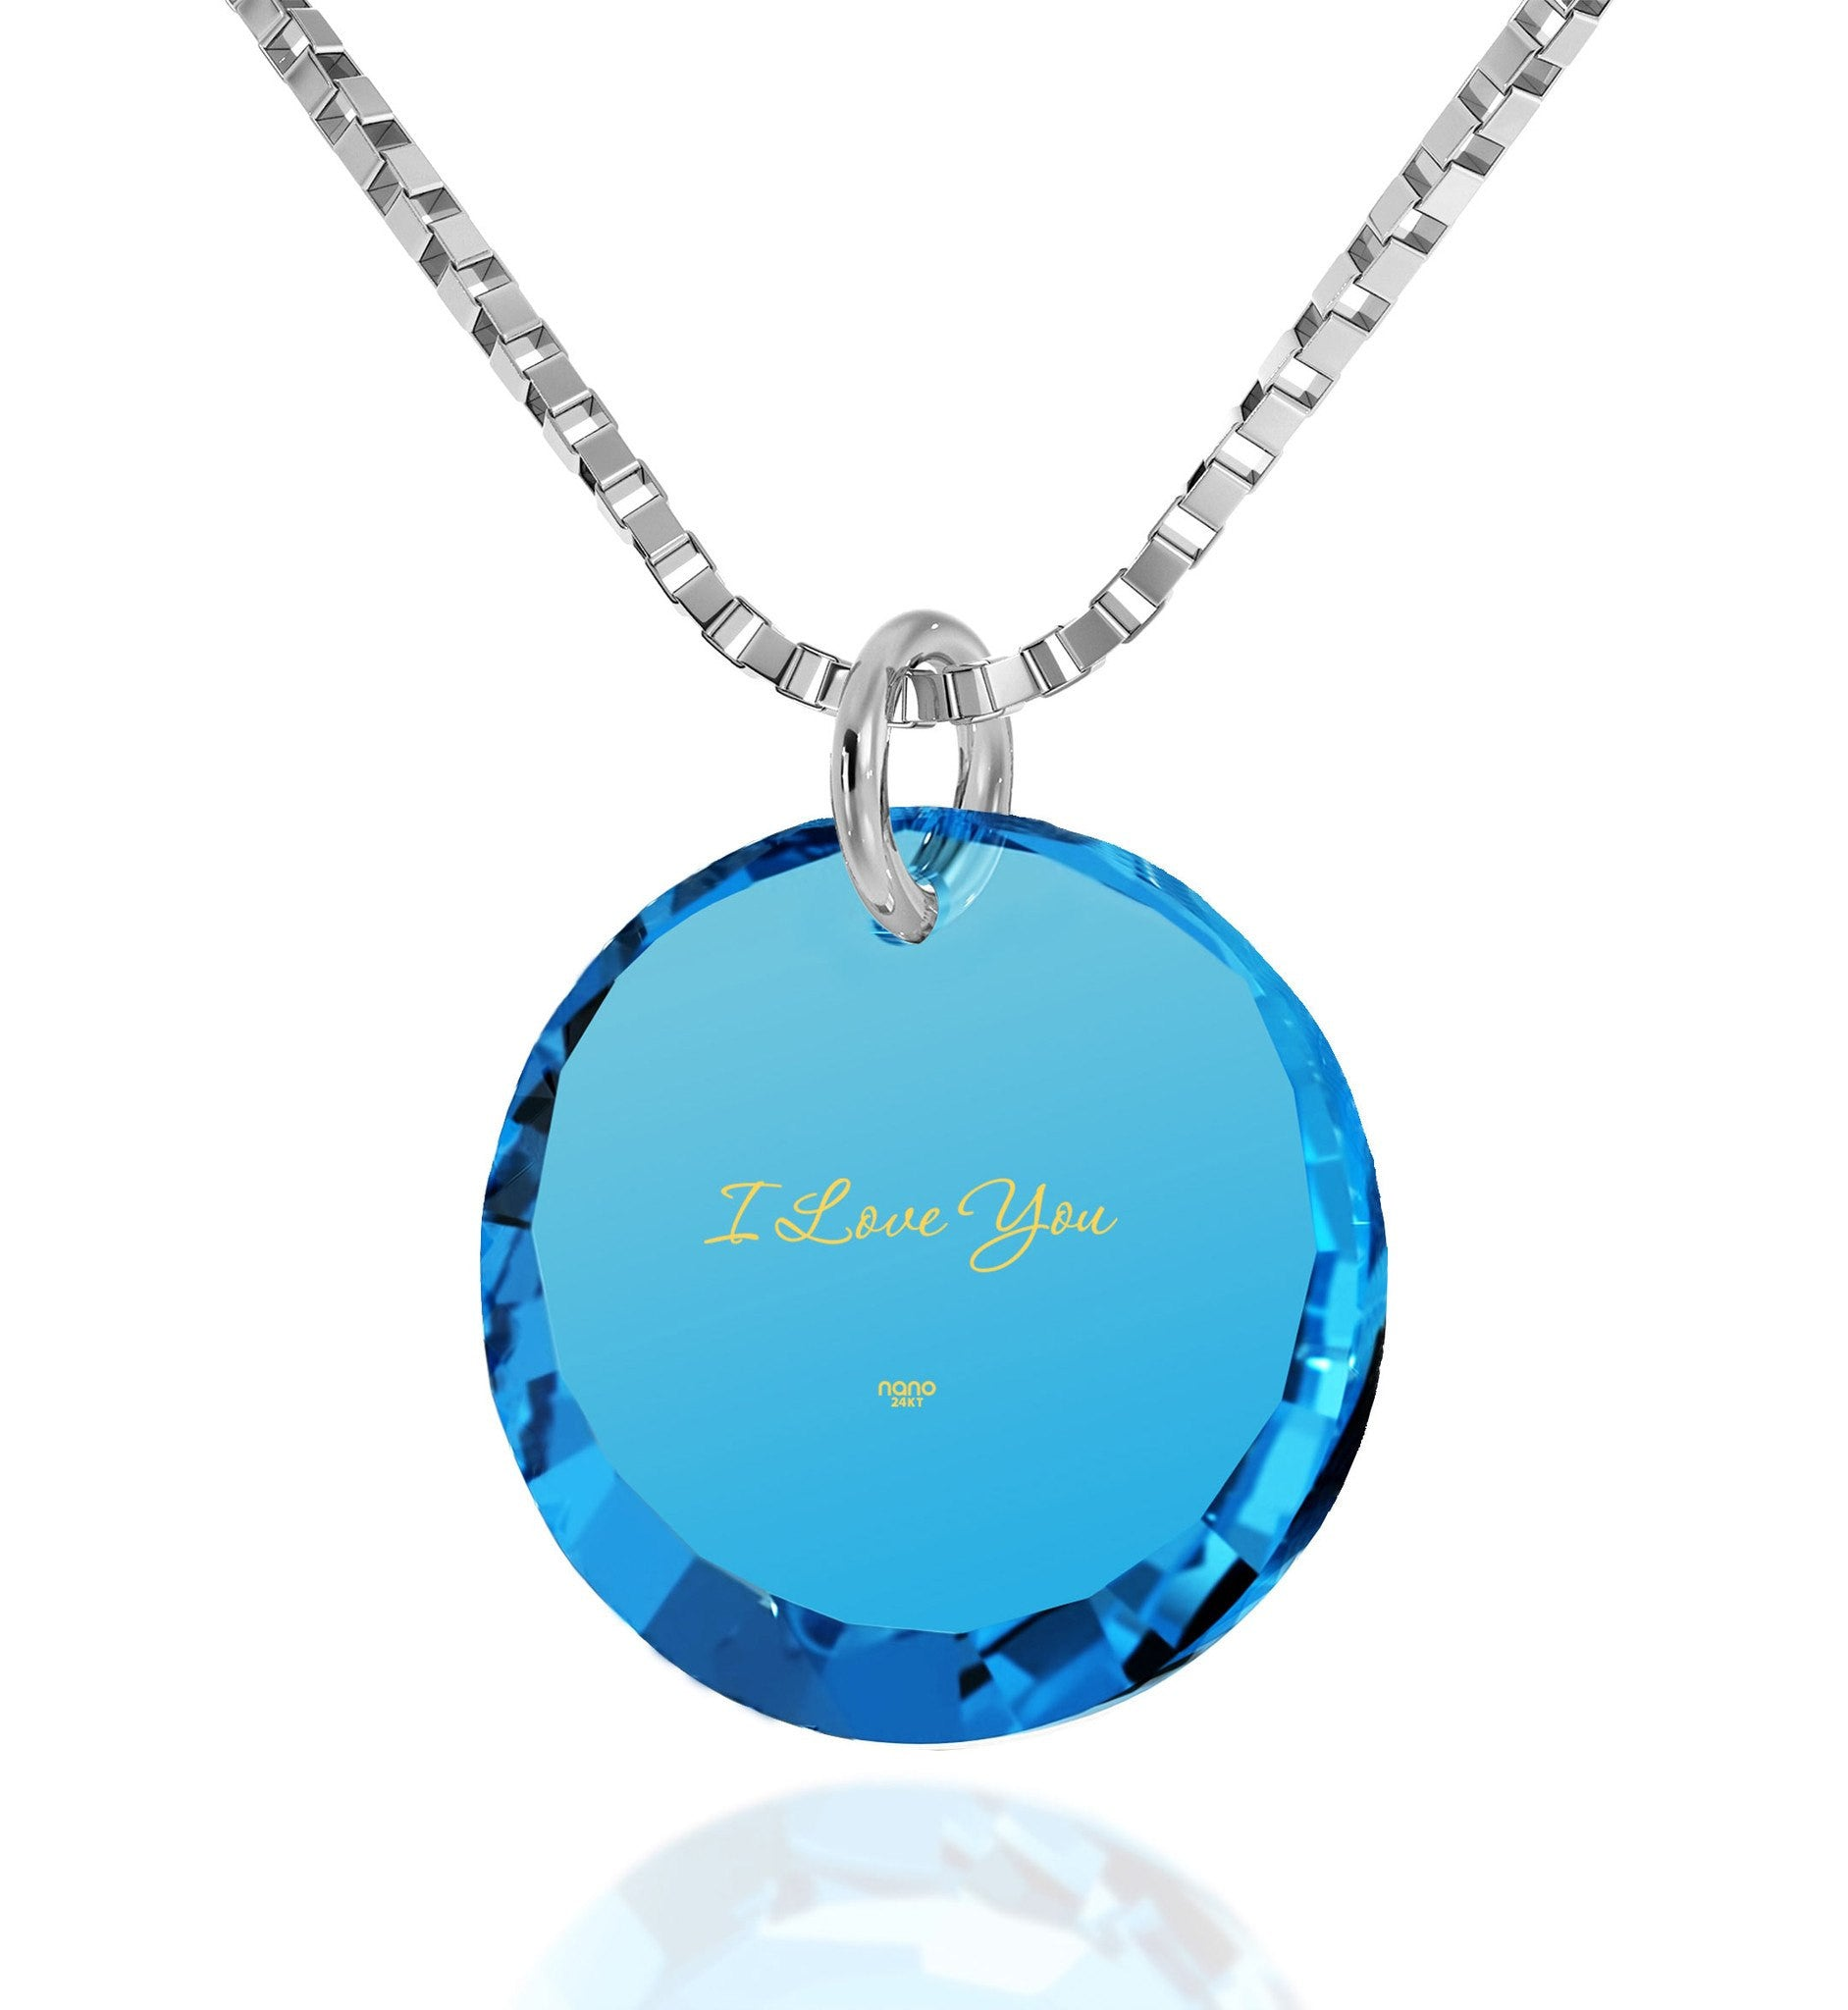 Top Womens Gifts, Blue Topaz Jewelry,Sterling Silver Necklace Chain, 30th Birthday Present Ideas, Nano